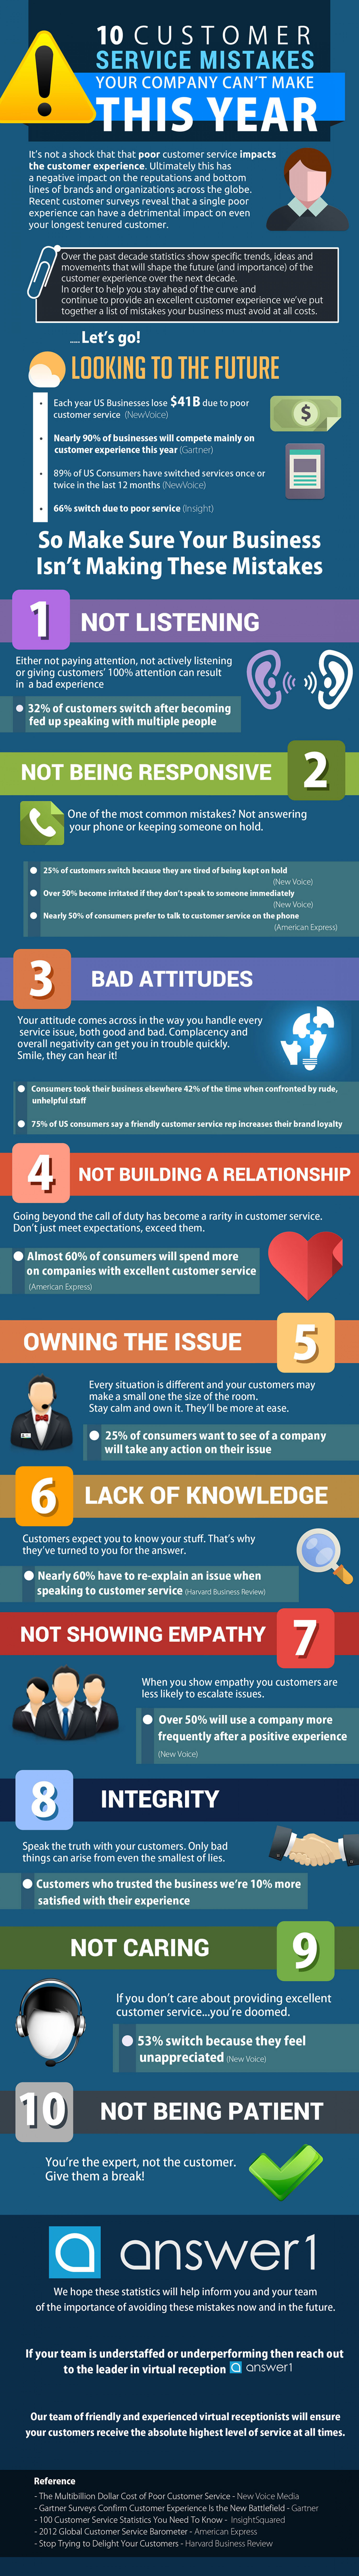 Ten Customer Service Mistakes Your Business Can't Make This Year Infographic